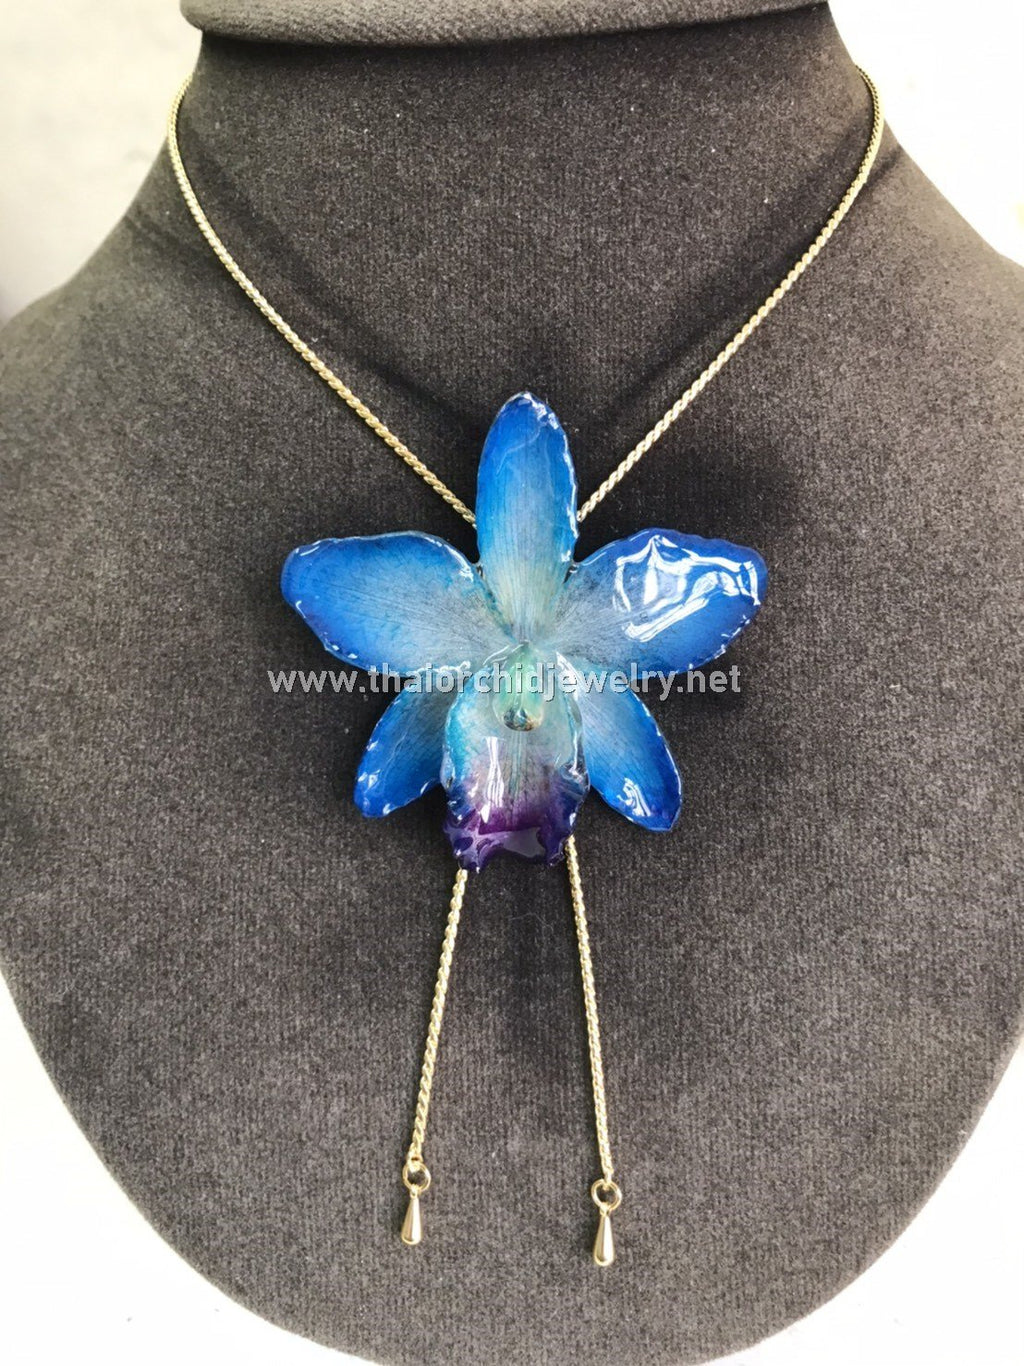 Cattleya Orchid Jewelry Slider Necklace Gold Plated 24K - BLUE SKY